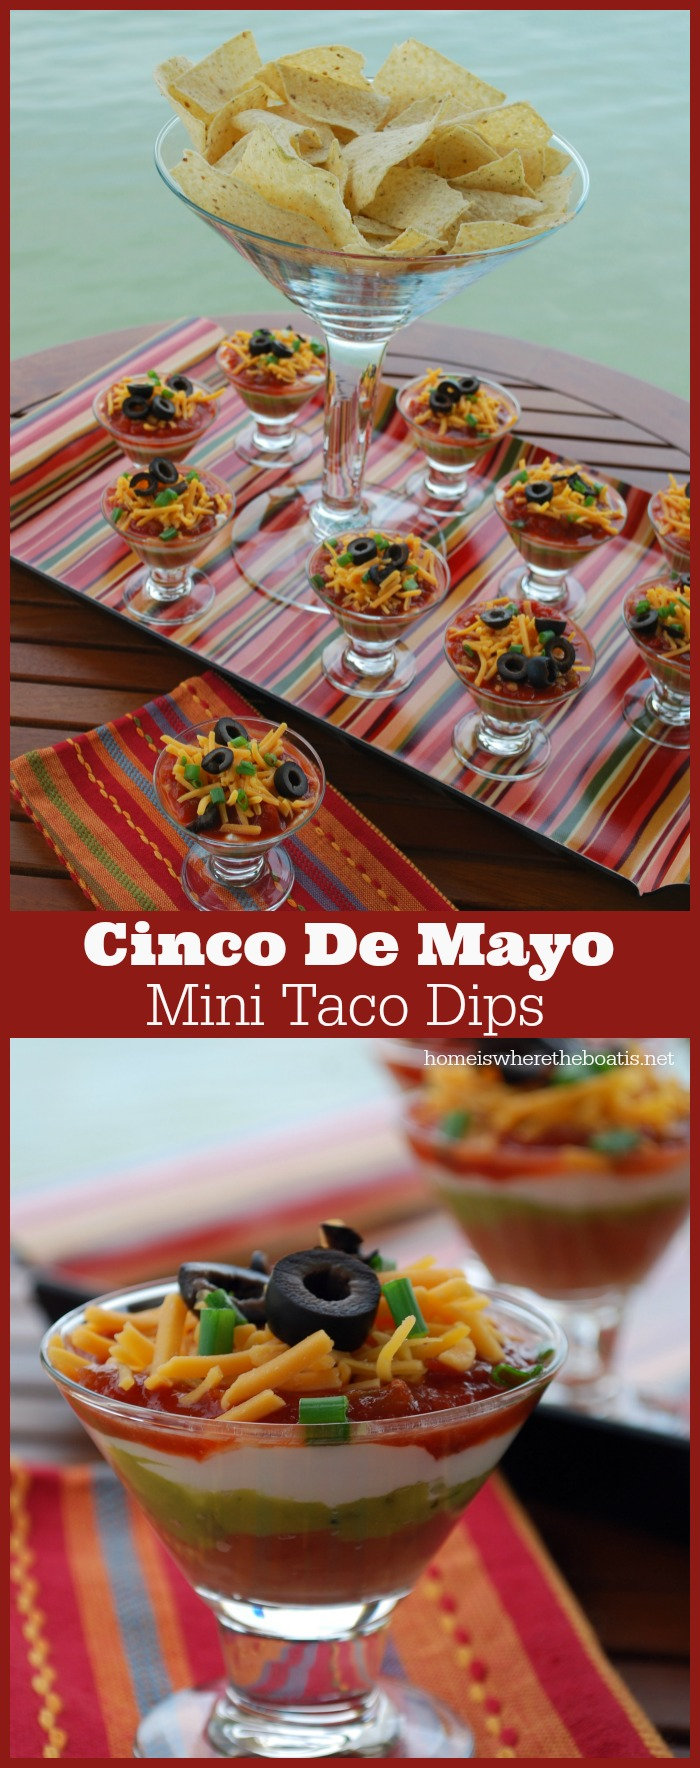 Cinco de Mayo Mini Taco Dips